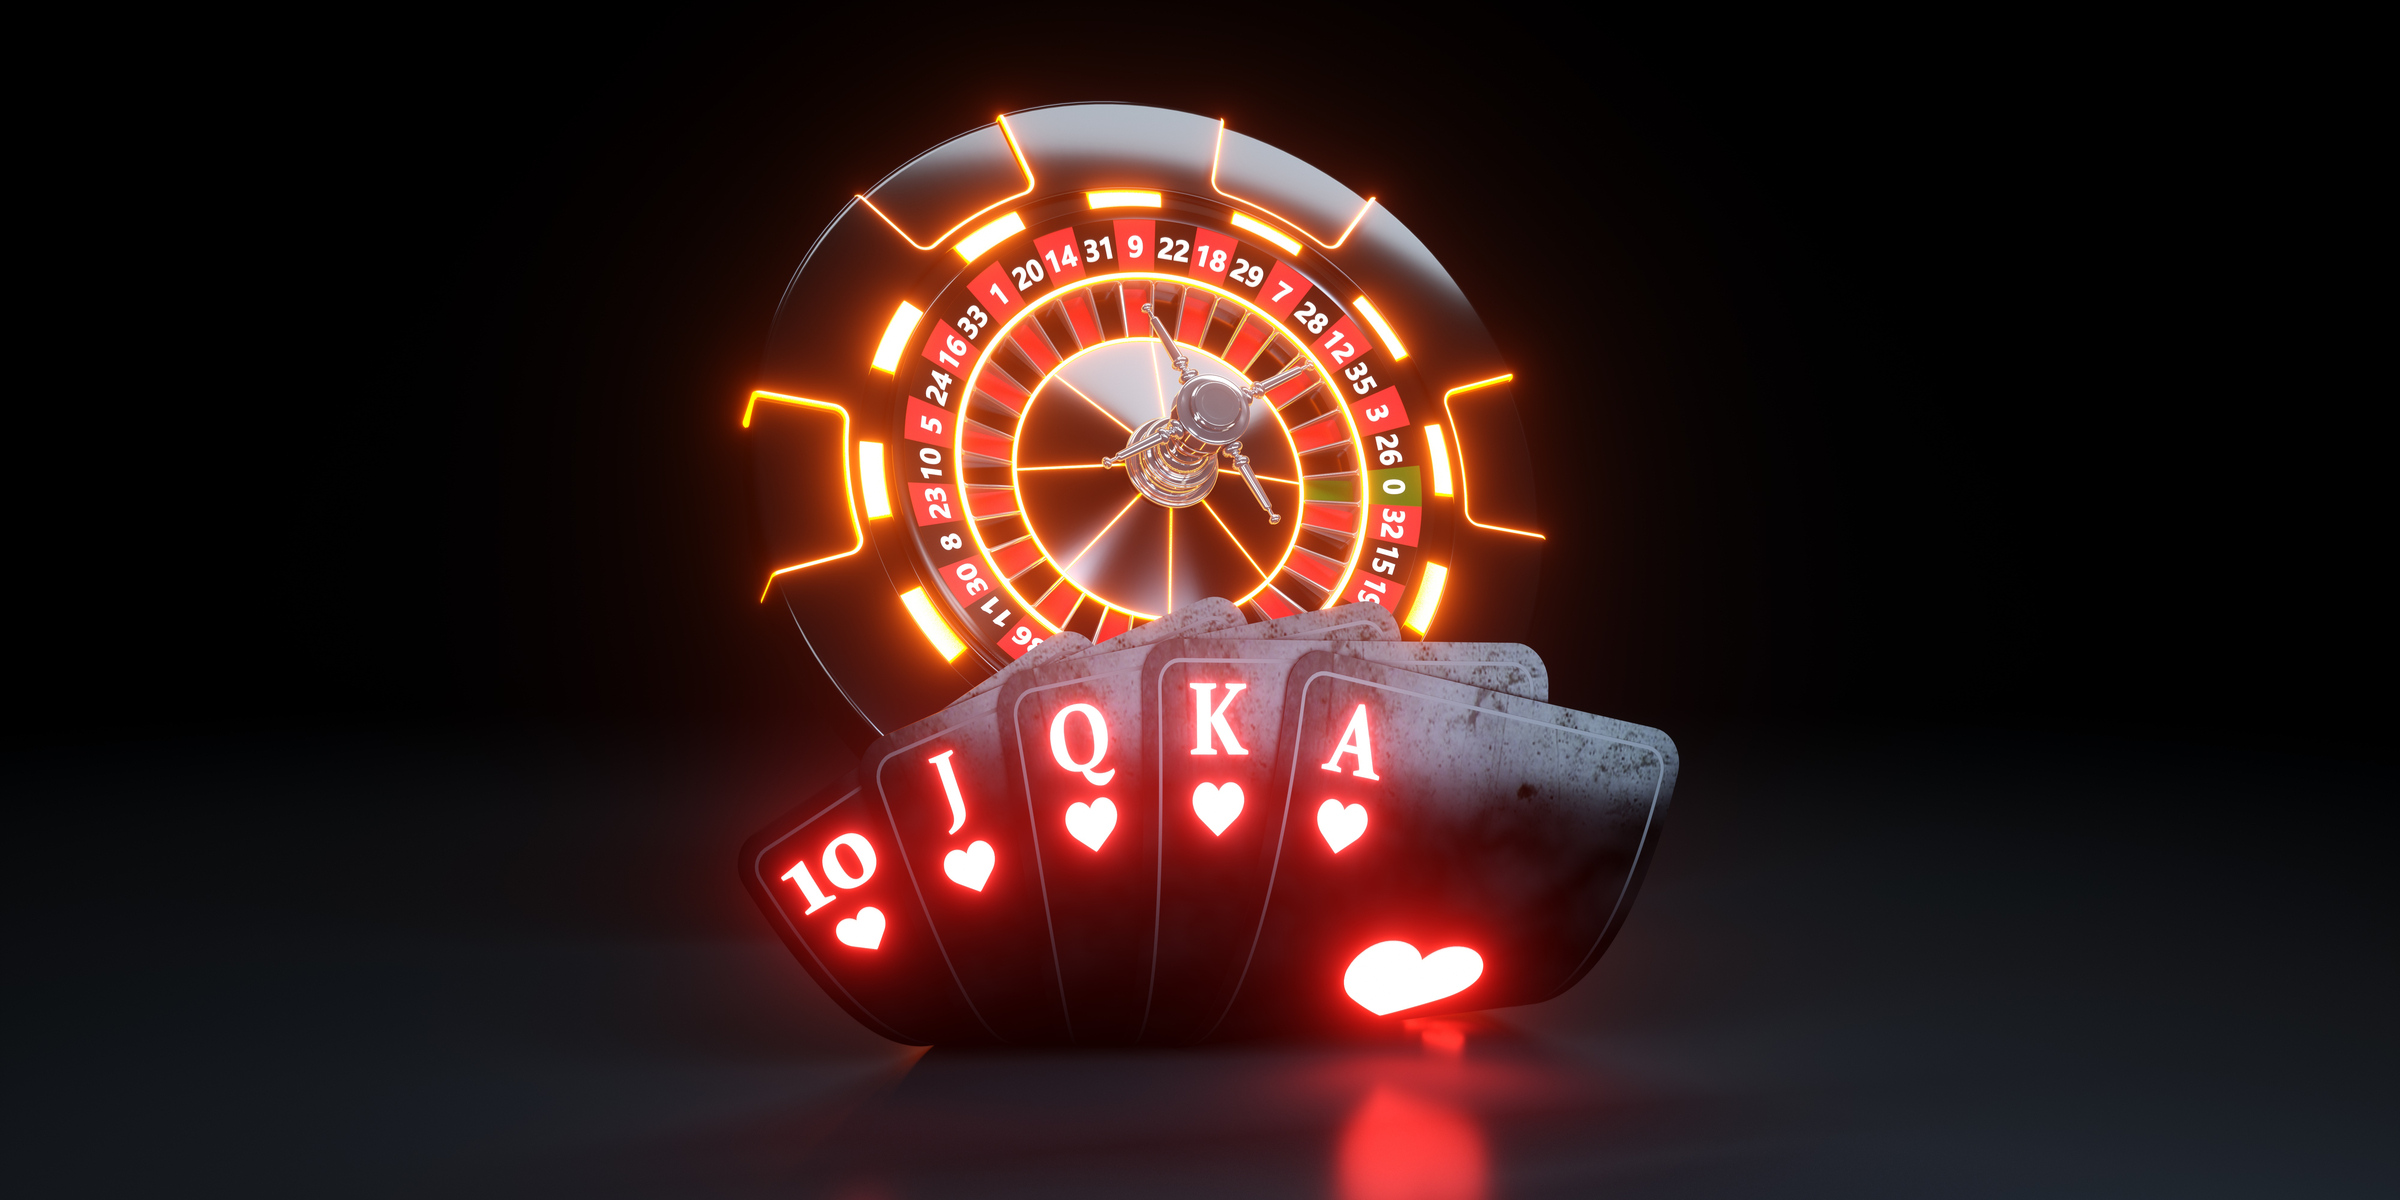 Tricks and cheating tips in casinos and roulette online